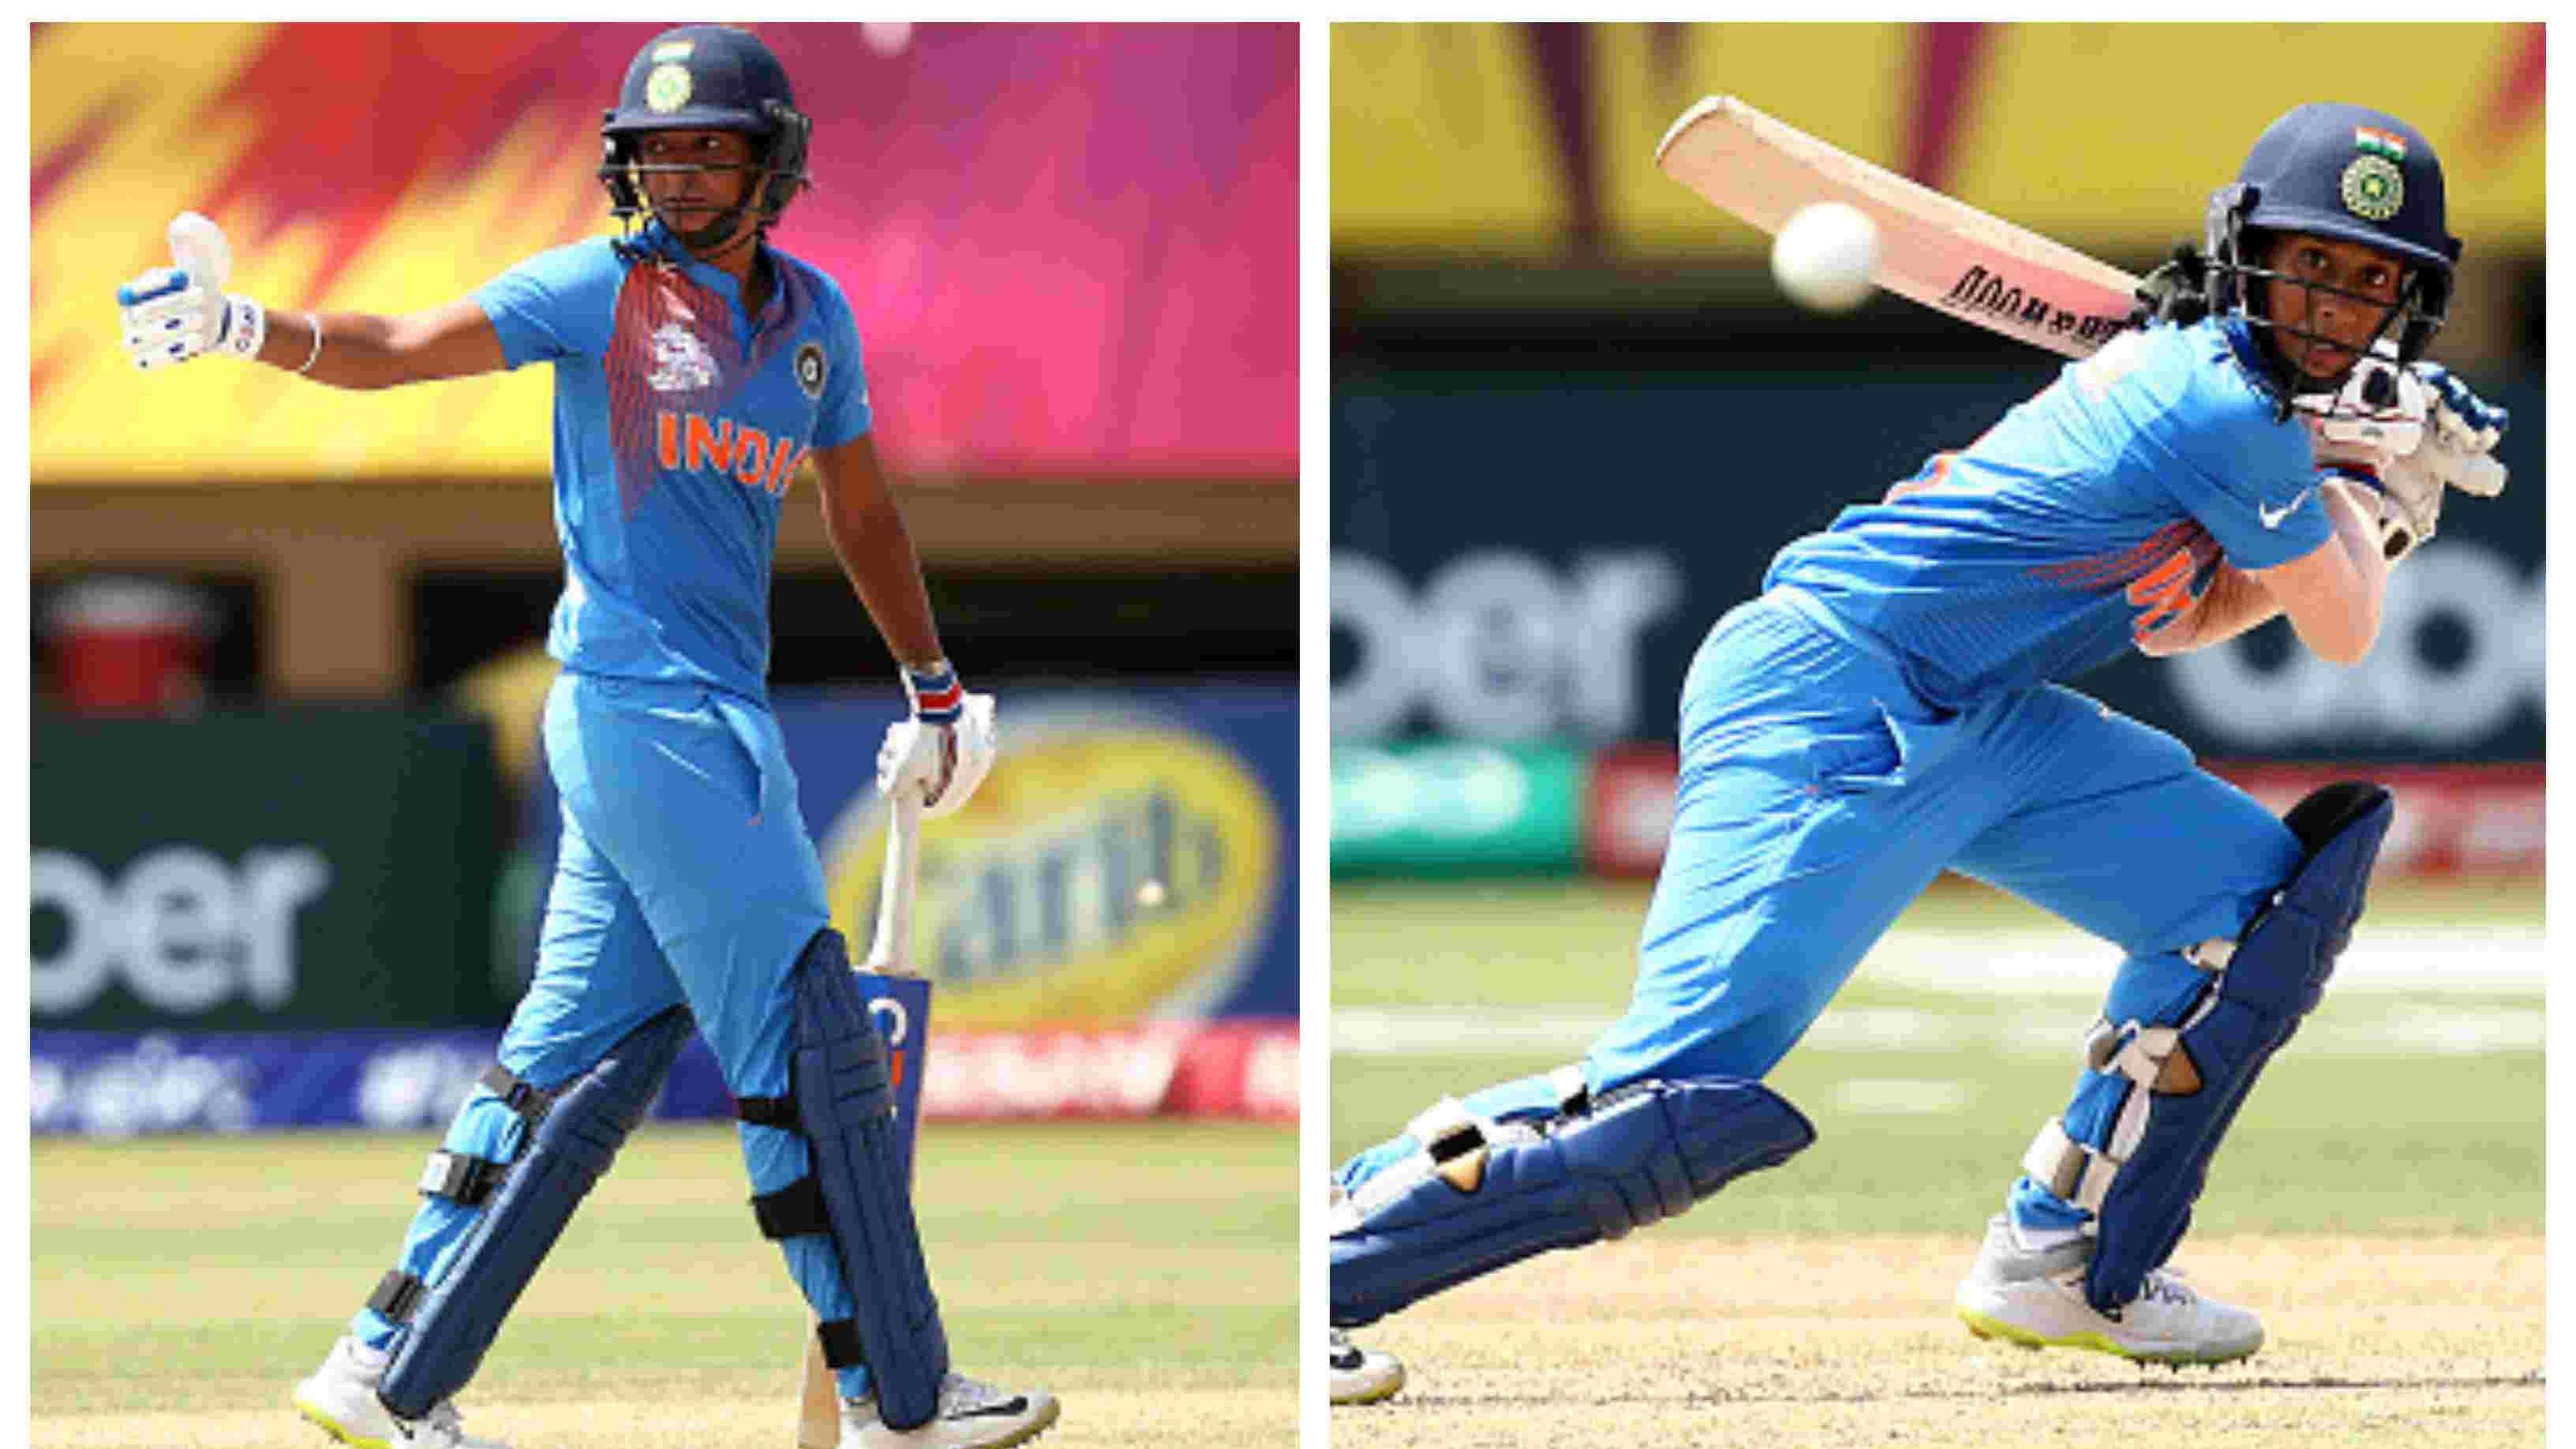 Harmanpreet Kaur, Jemimah Rodrigues make gains in latest ICC women's T20 rankings